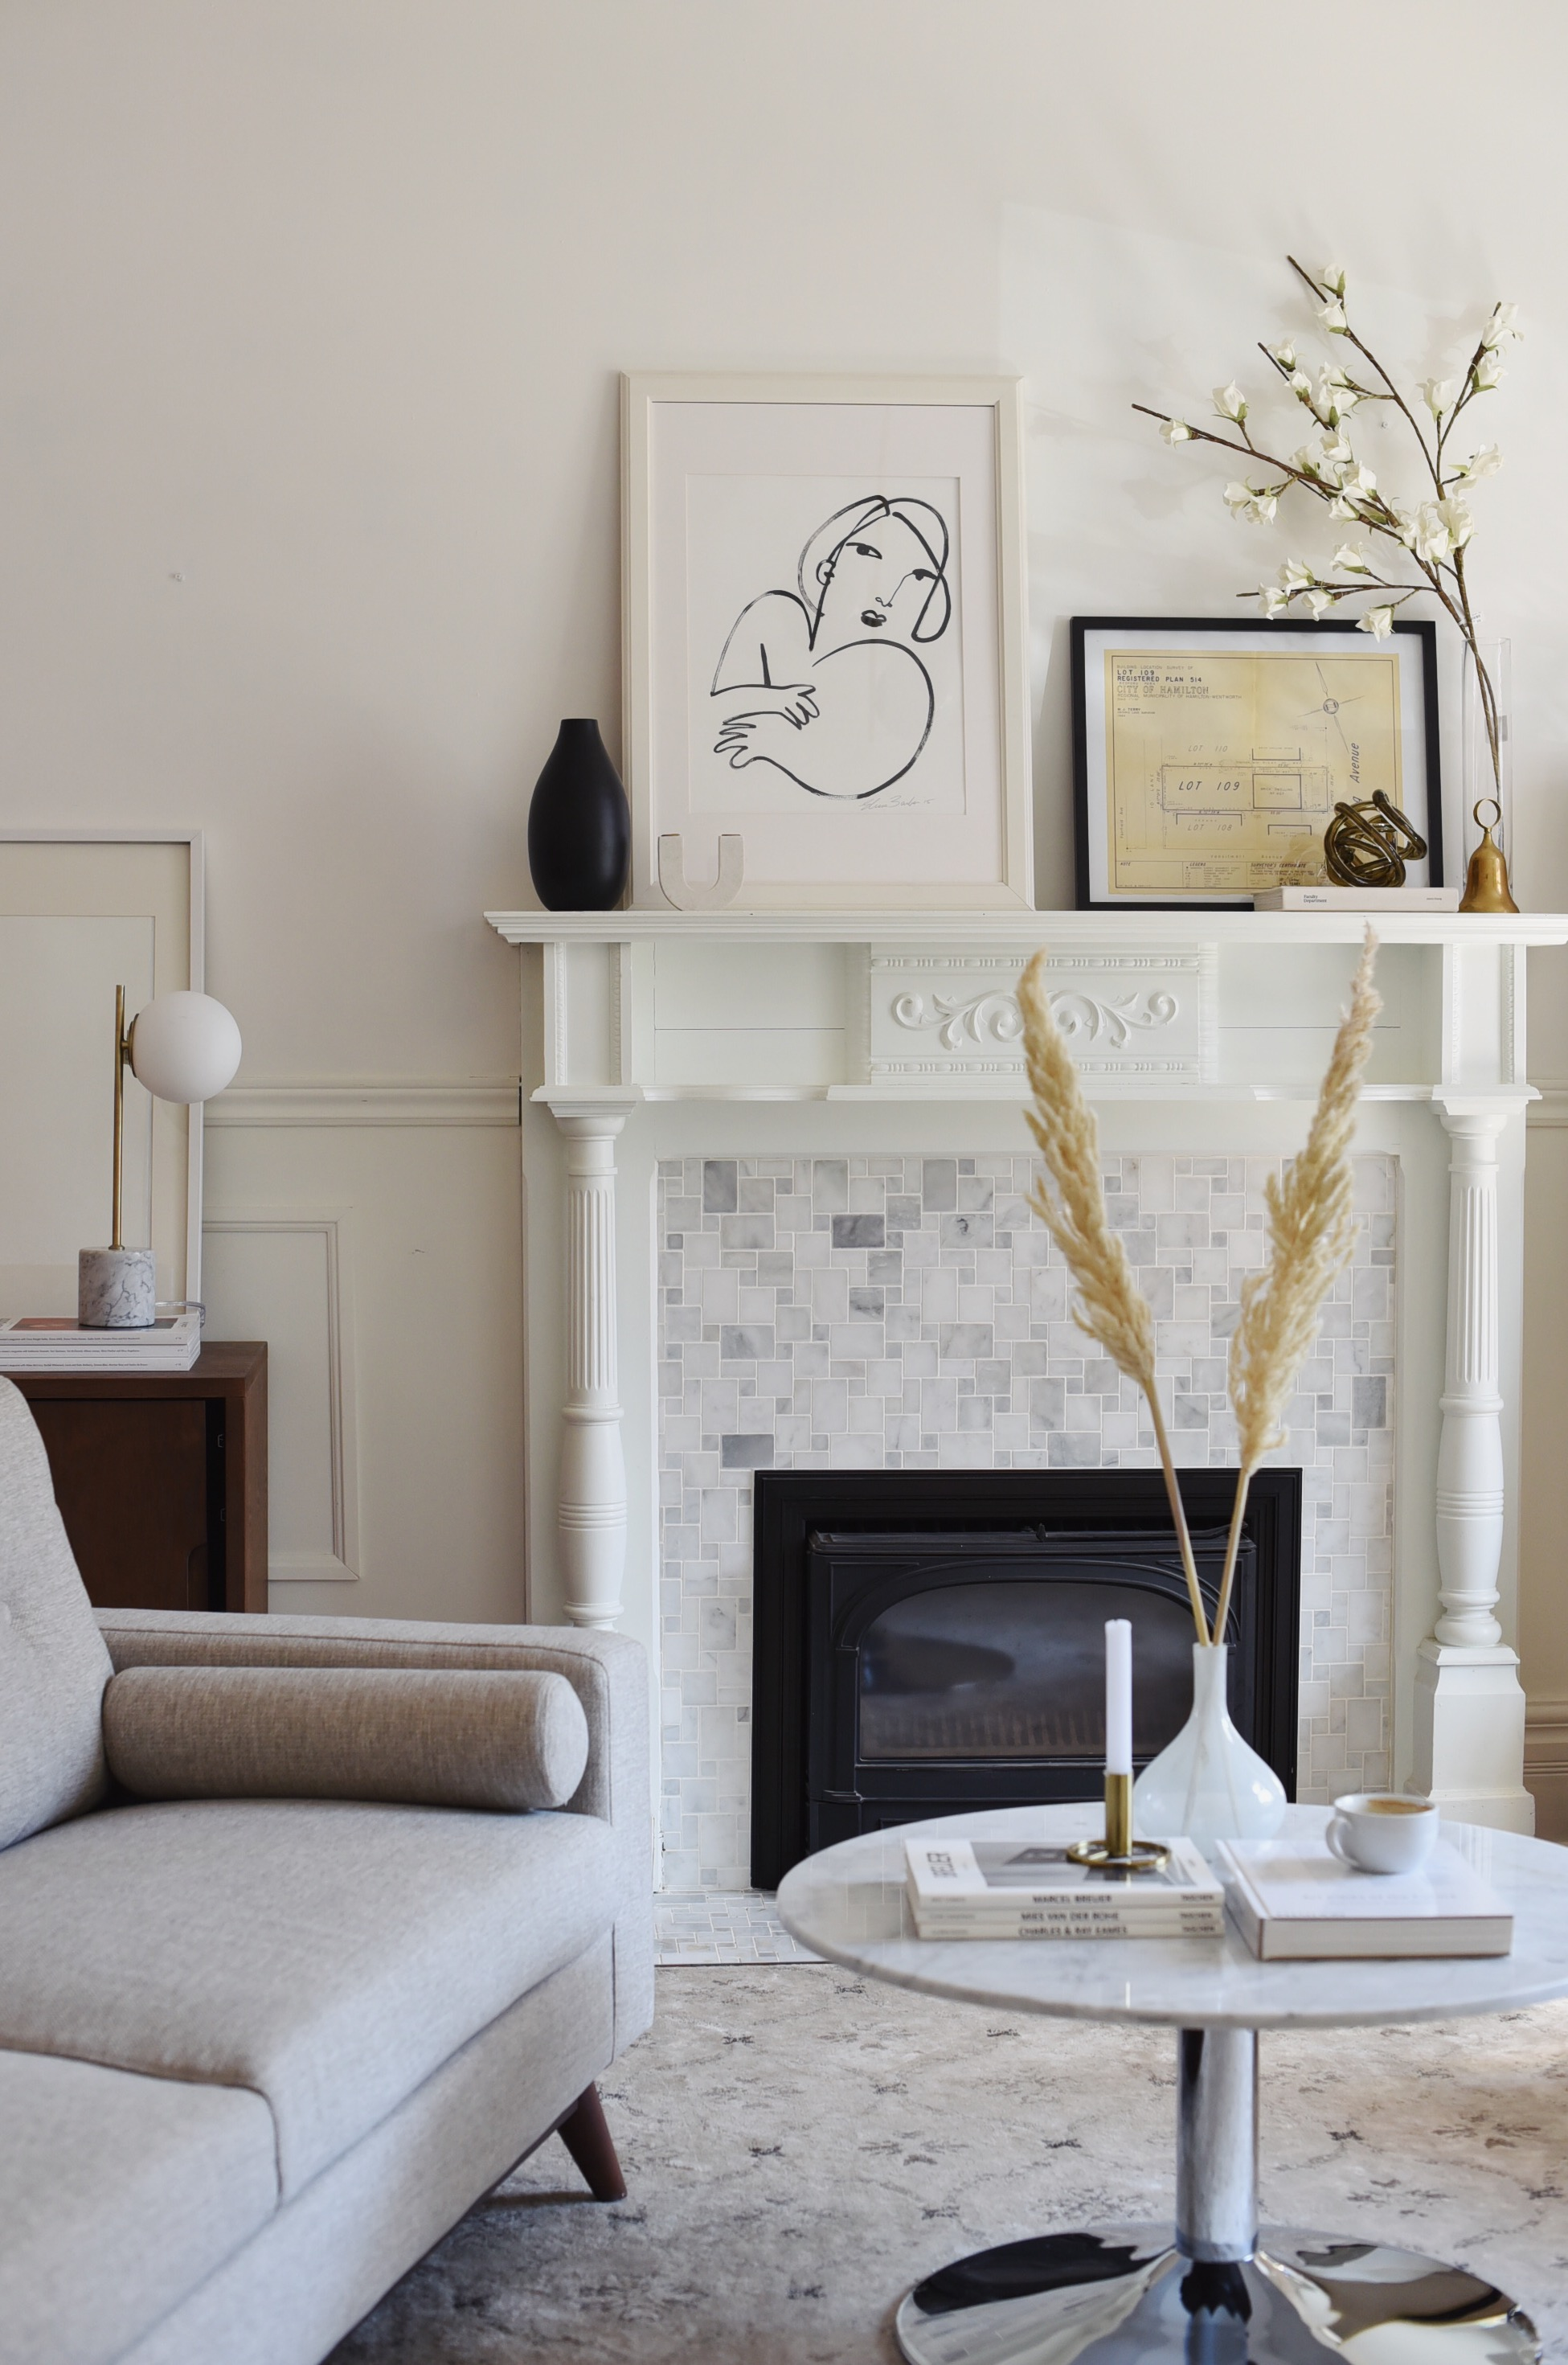 At Home: Living Room Reveal